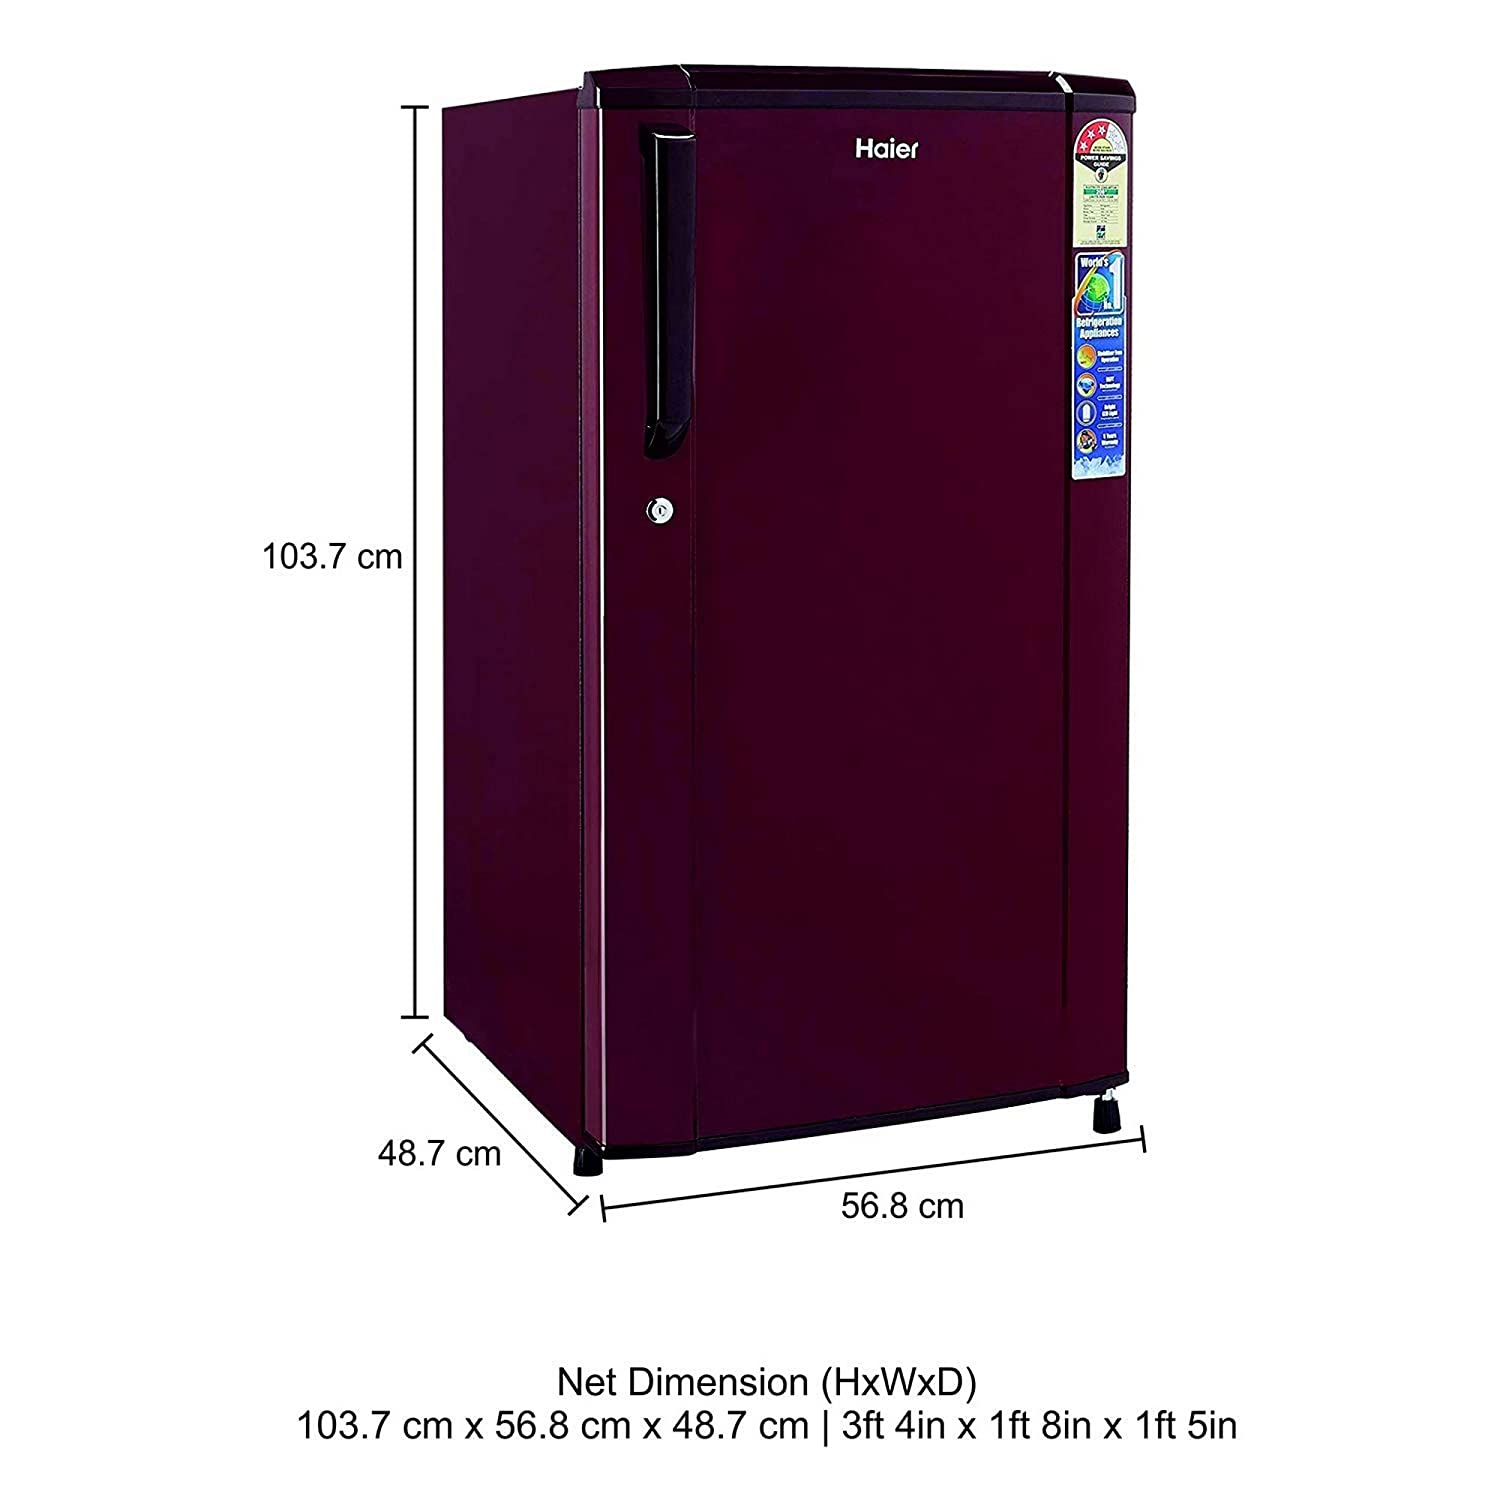 Haier 170 L 3 Star Direct Cool Single Door Refrigerator(HRD-1703SR-R/HRD-1703SR-E, on